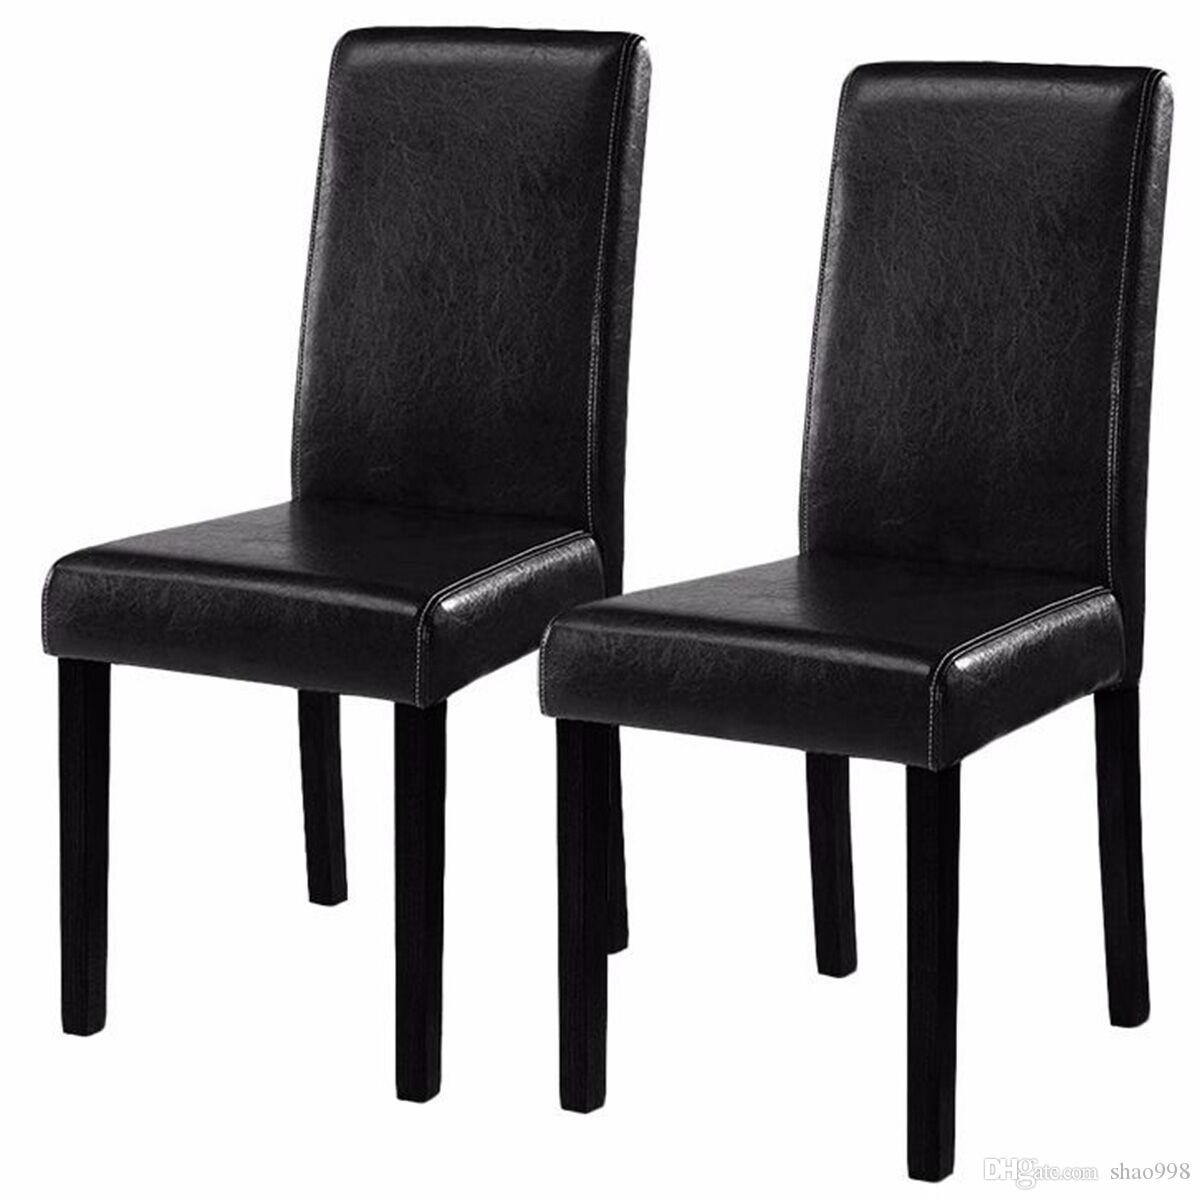 of 2 black elegant design leather contemporary dining chairs home rh dhgate com